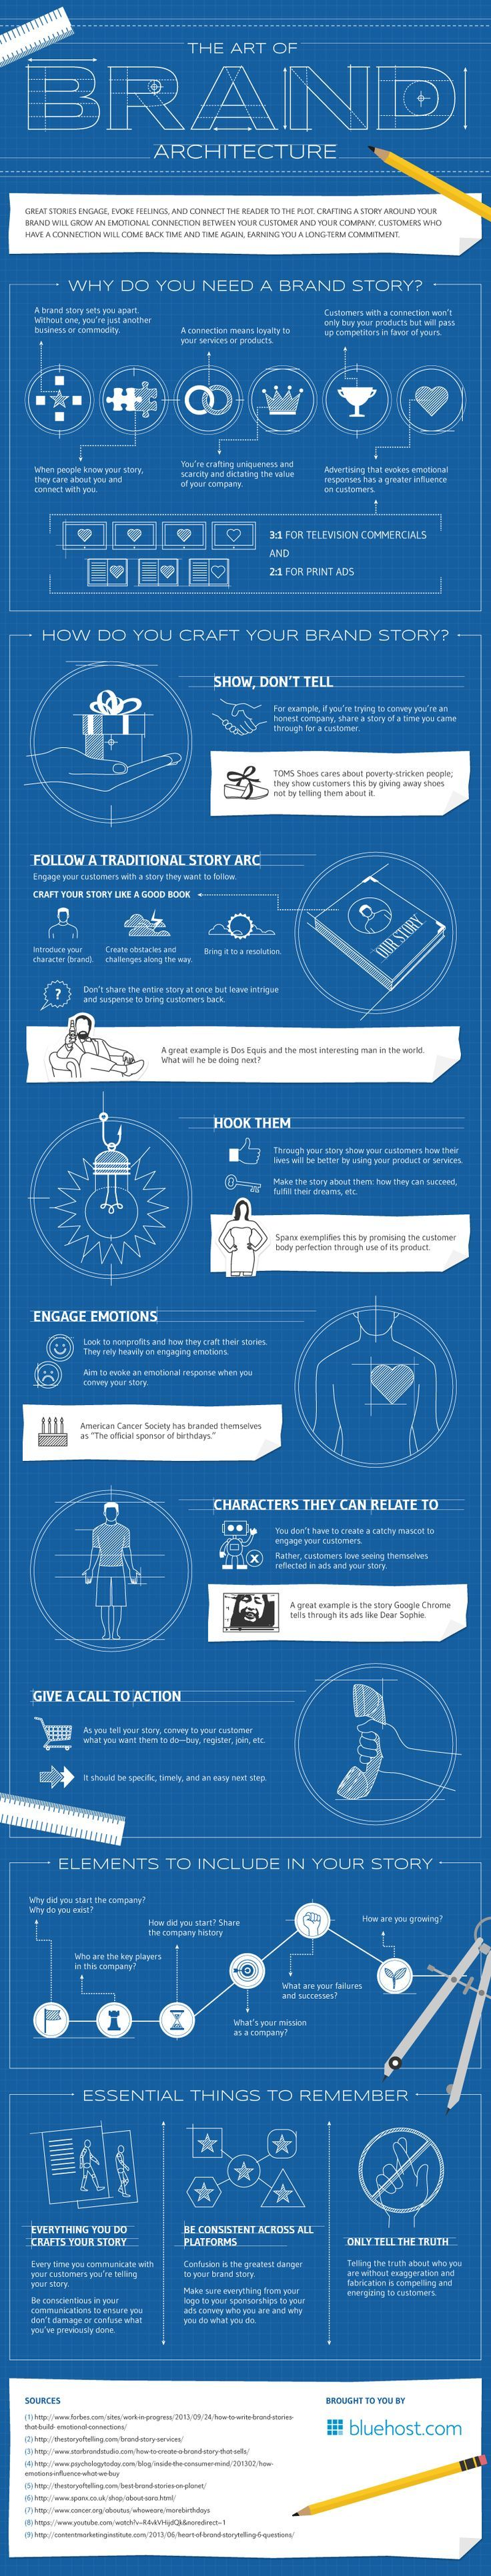 the art of brand architecture in a blueprint via liubadraws infographic design brand architecture office